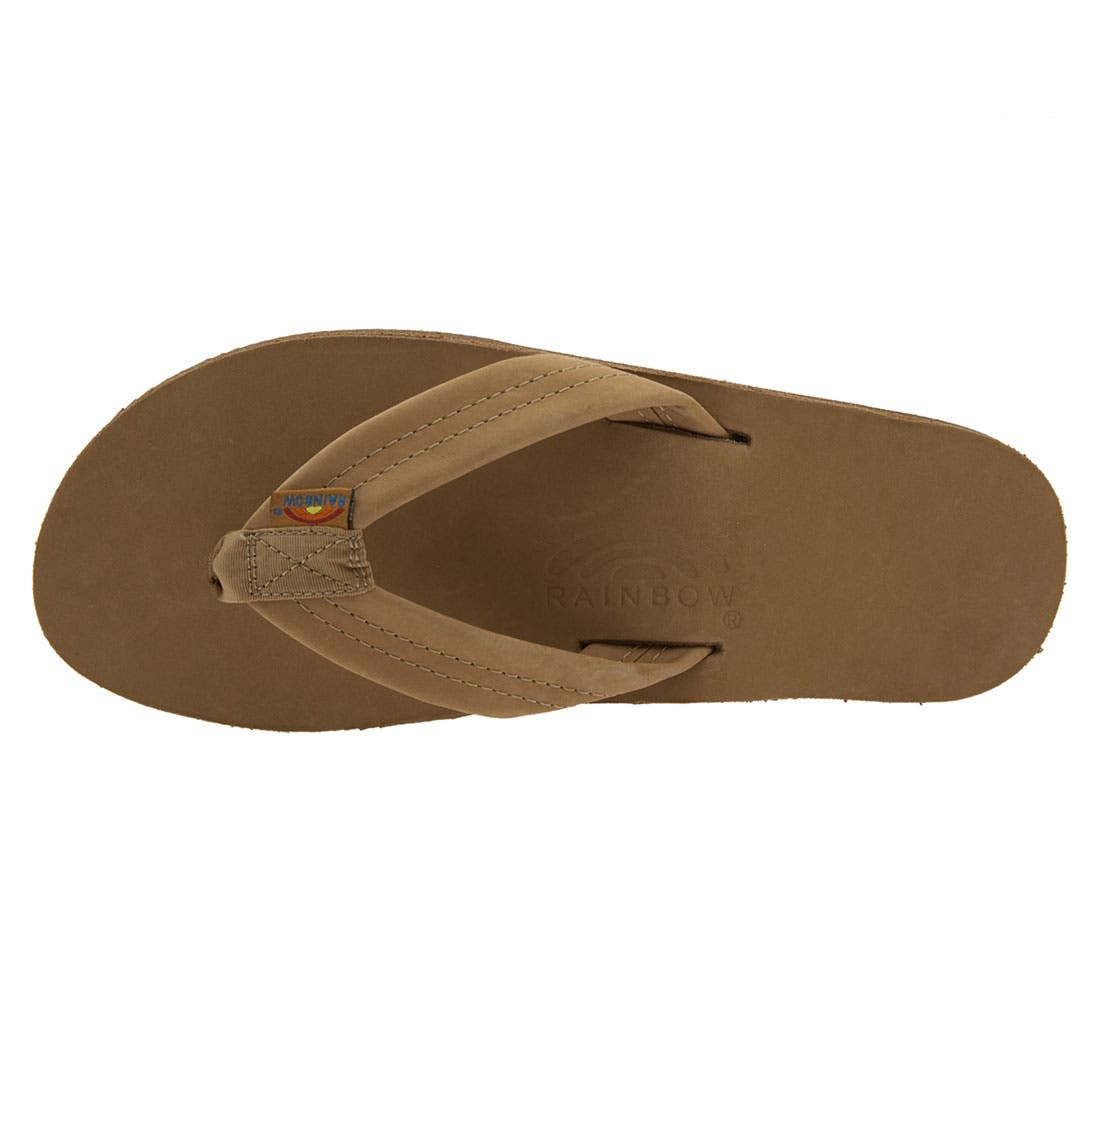 '301Alts' Sandal,                             Alternate thumbnail 3, color,                             Brown